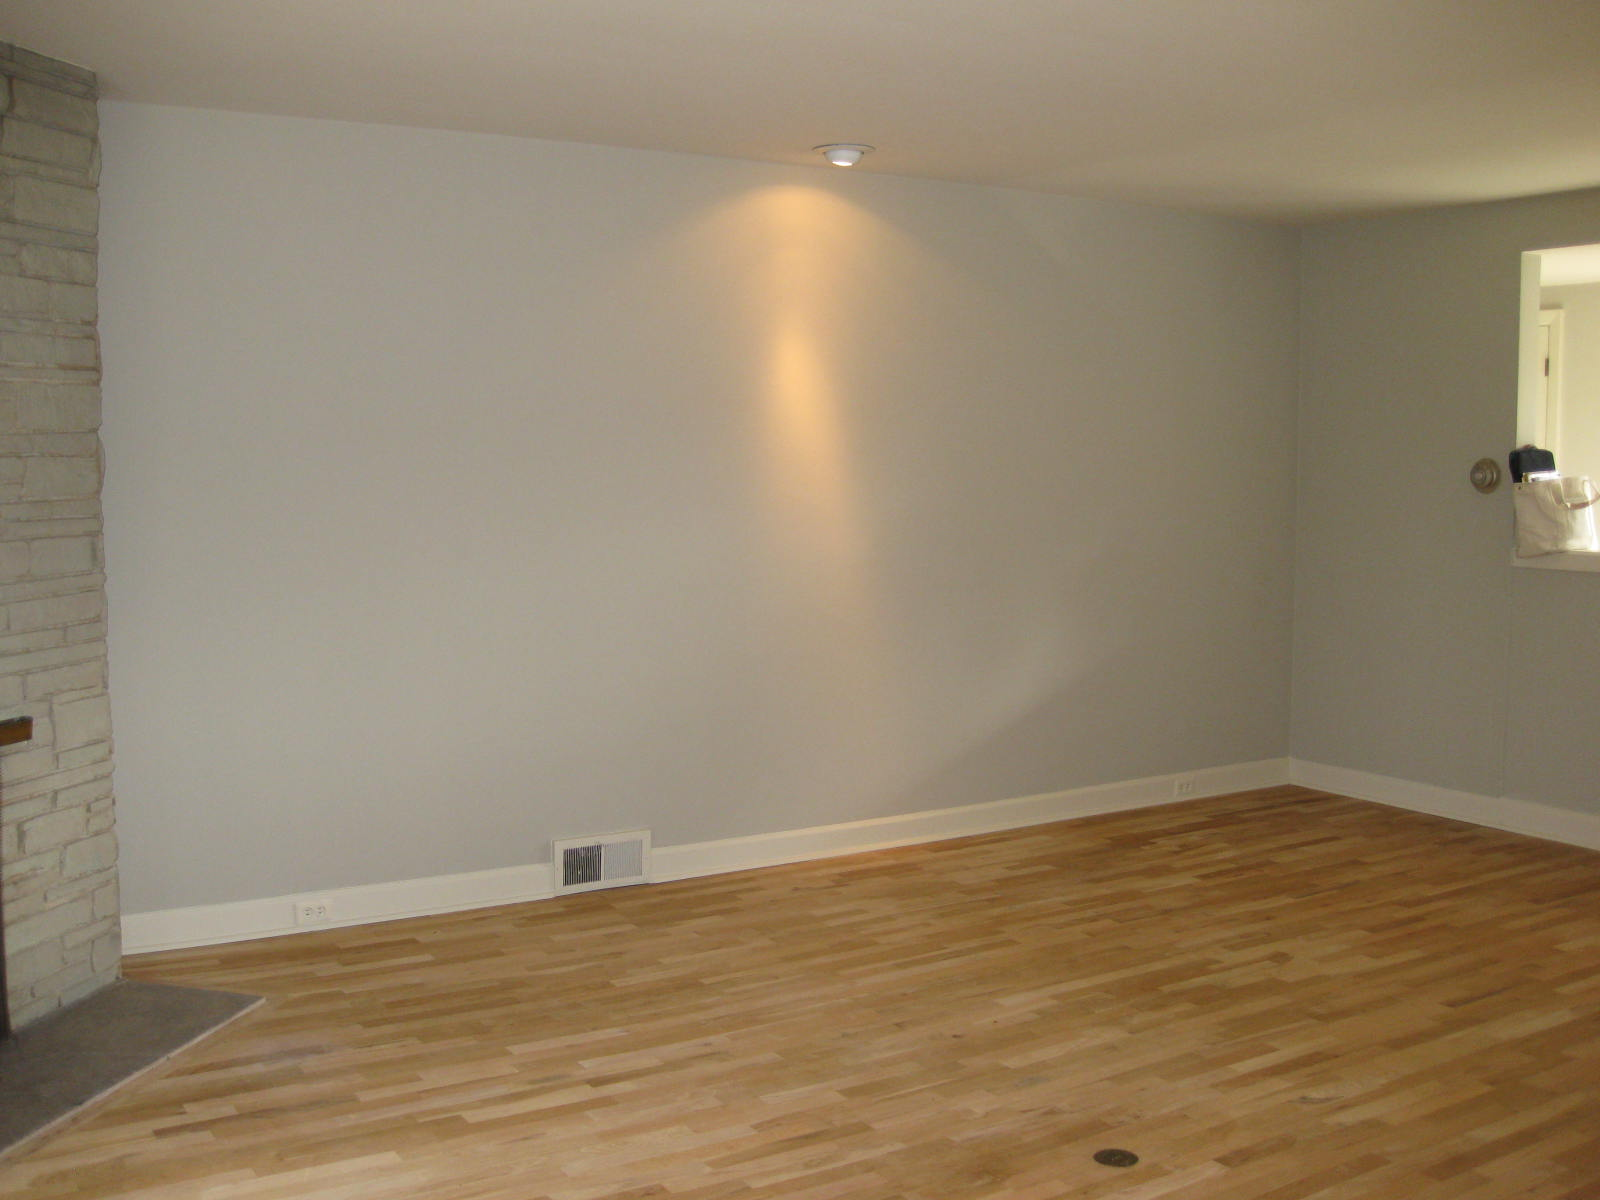 This blank wall becomes the 'slat wall' and possibly holds the television?